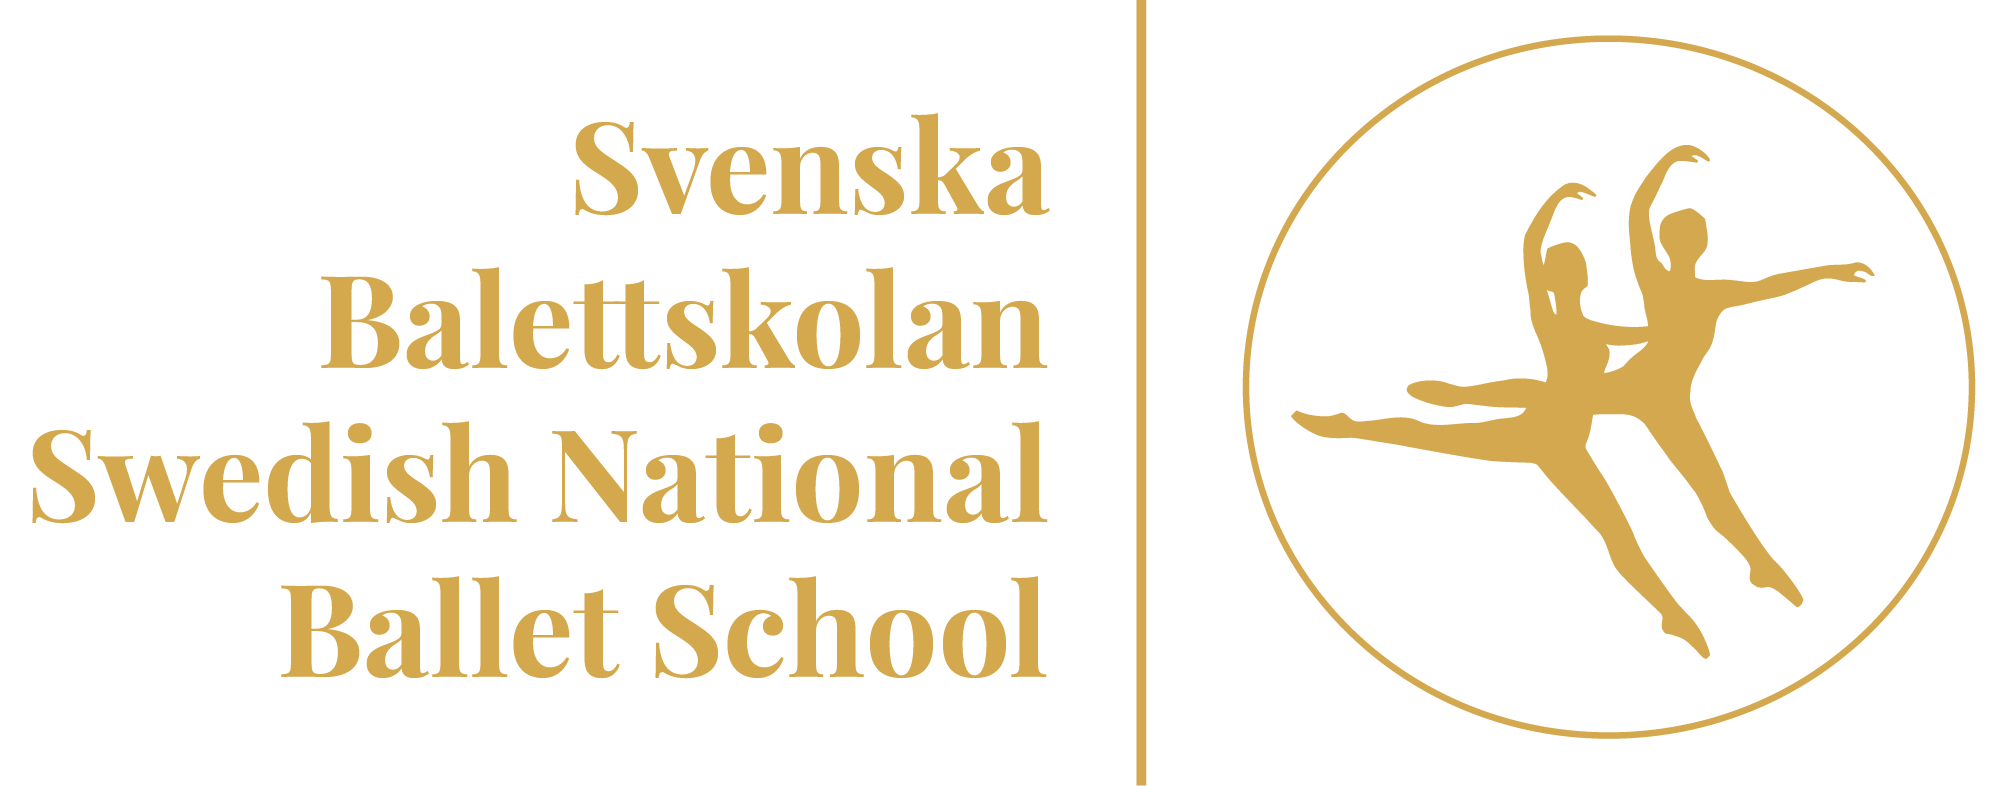 Svenska Balettskolan / Swedish National Ballet School